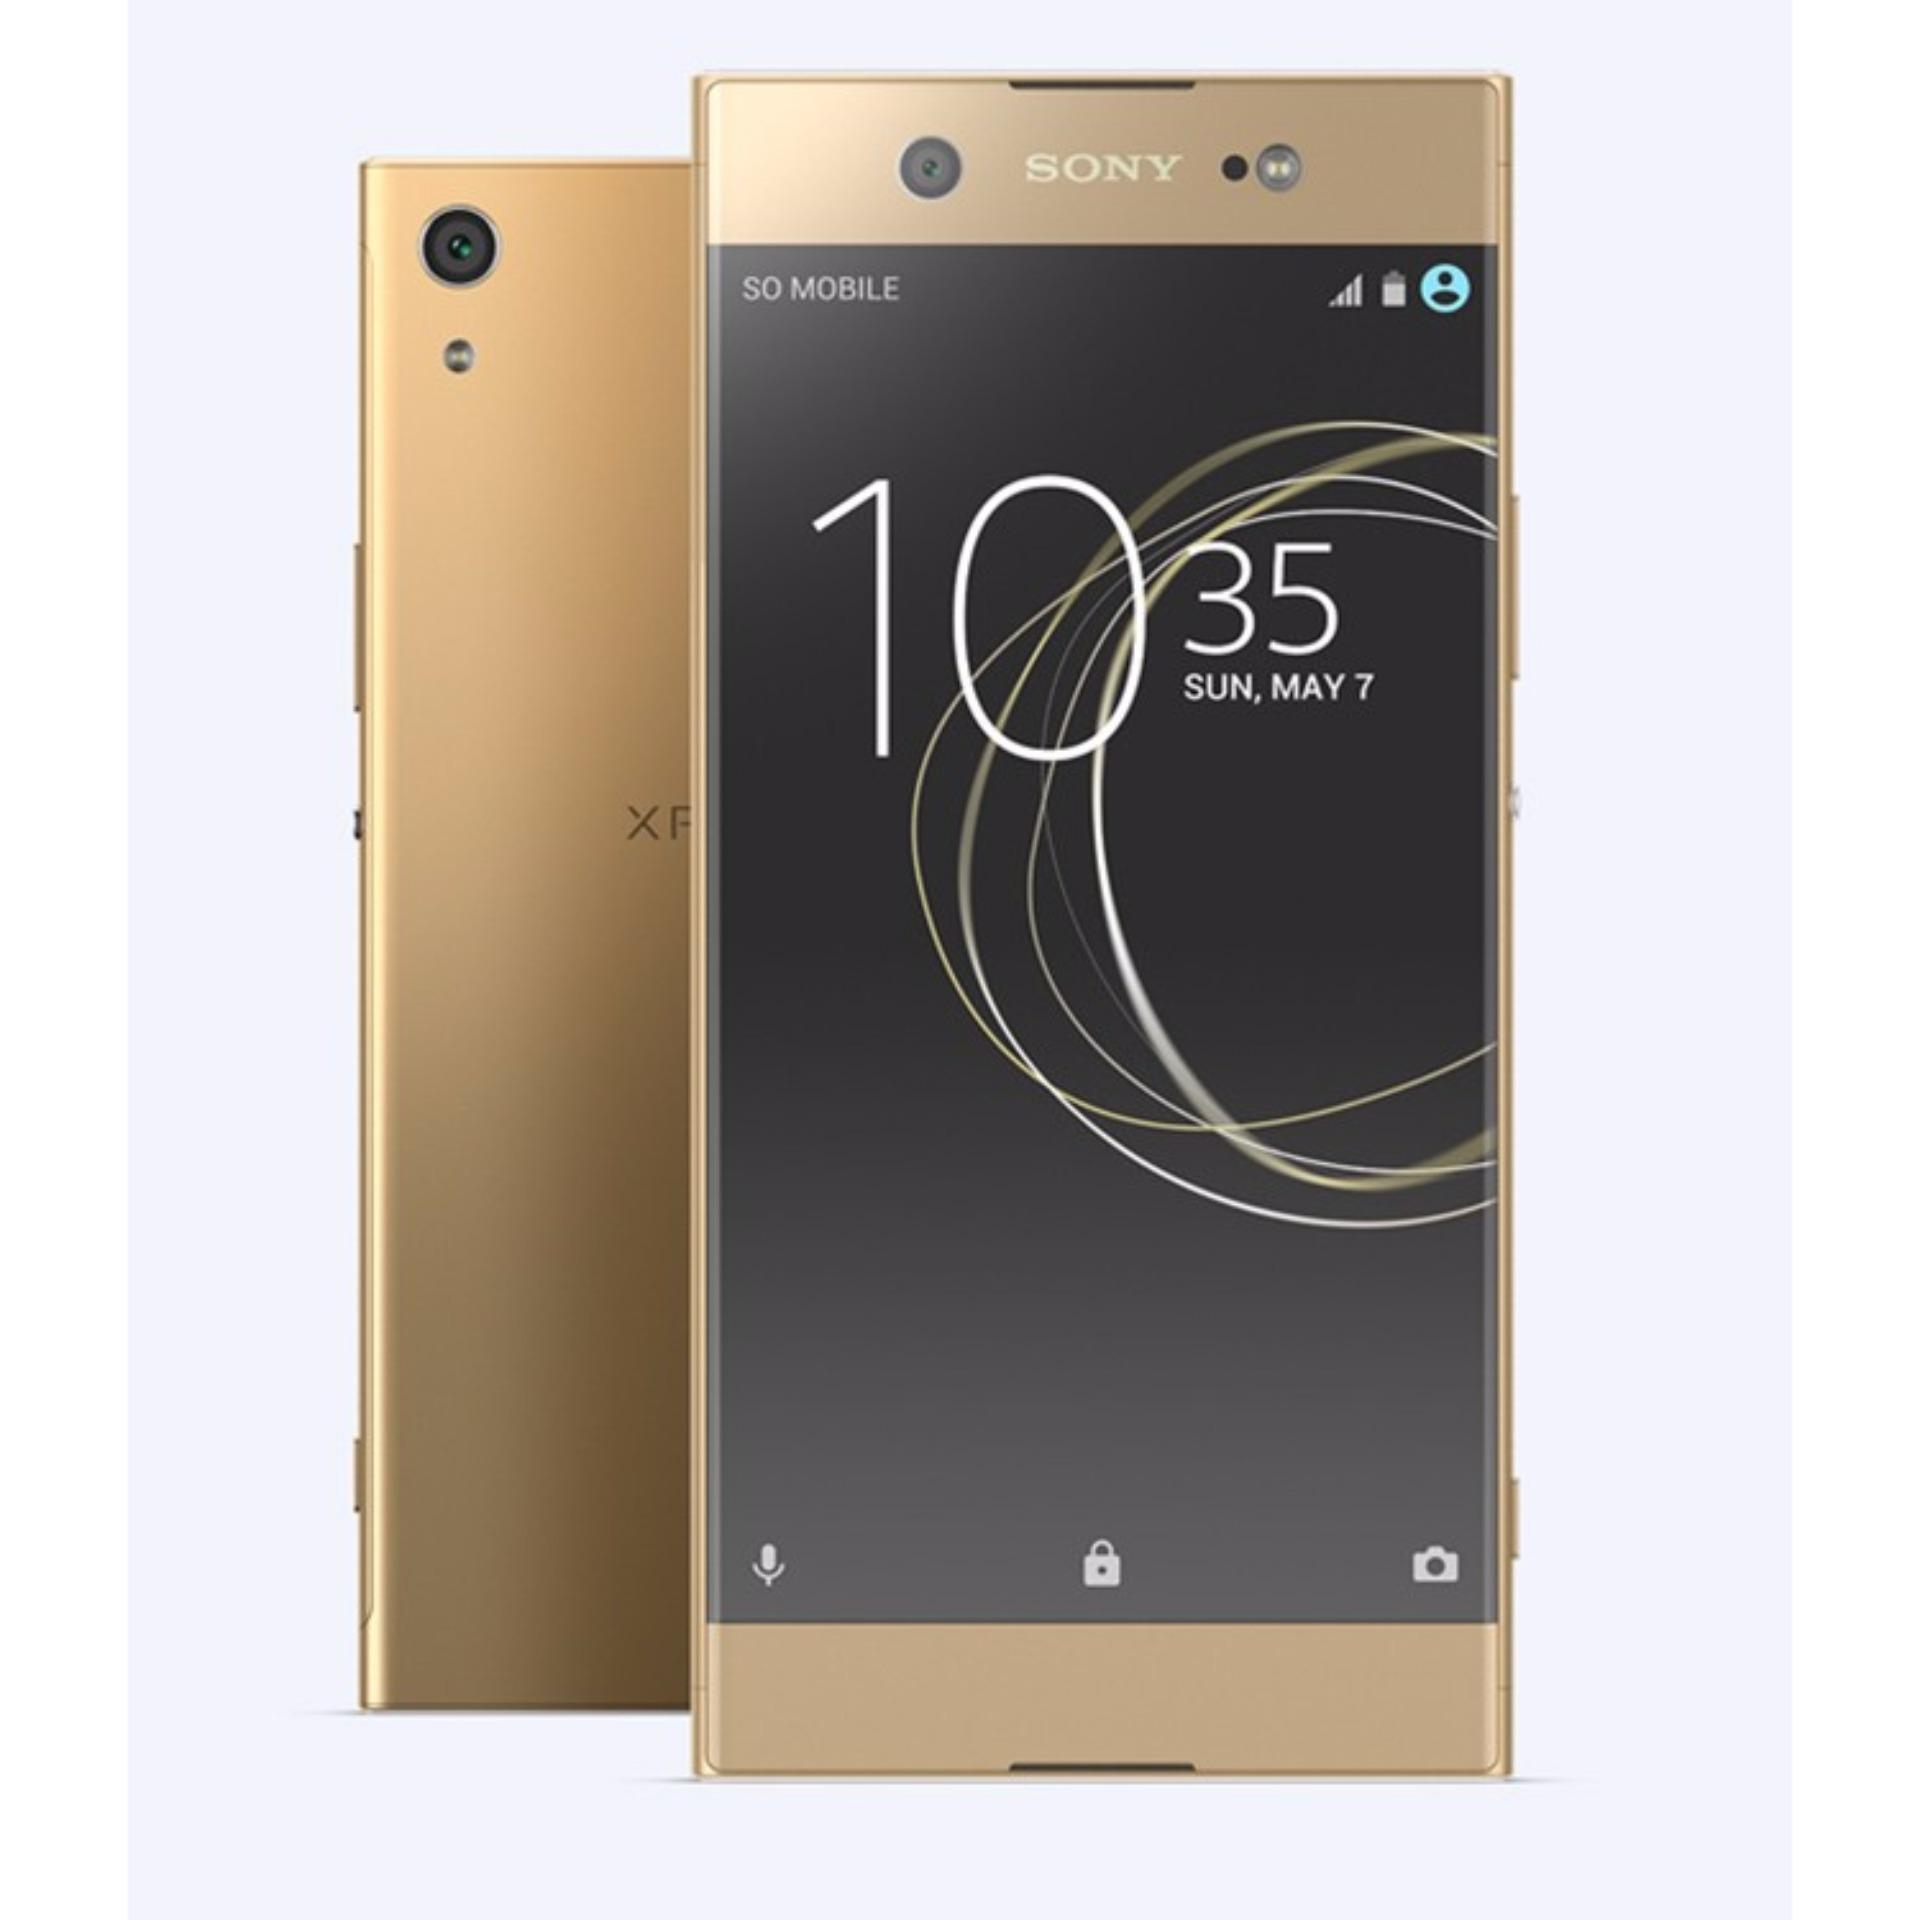 Sony Xperia XA1 Ultra 64GB / 4GB Ram (Gold) – 2017 Best Seller